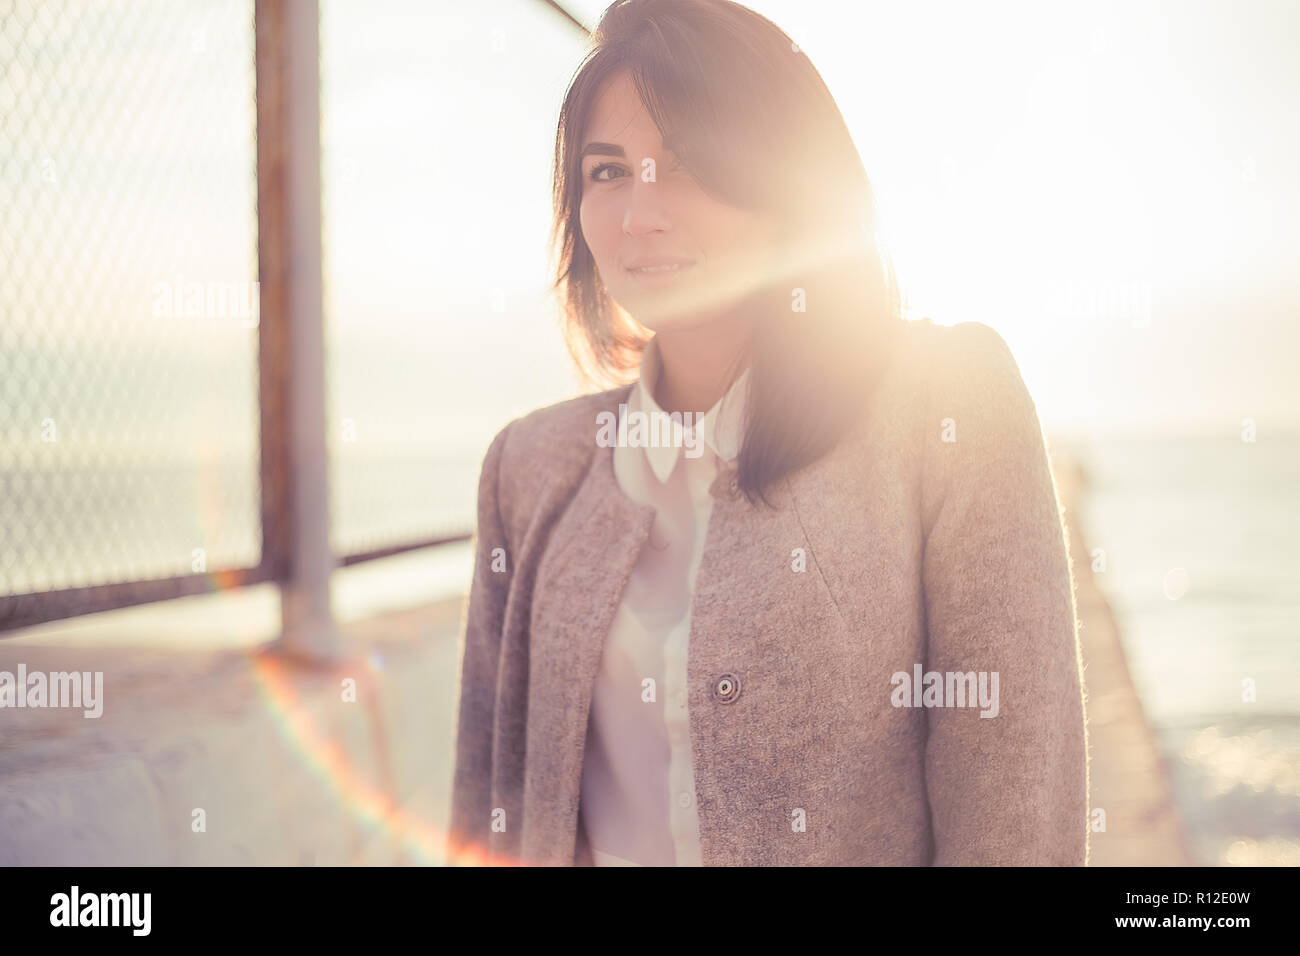 Woman near wire fence - Stock Image